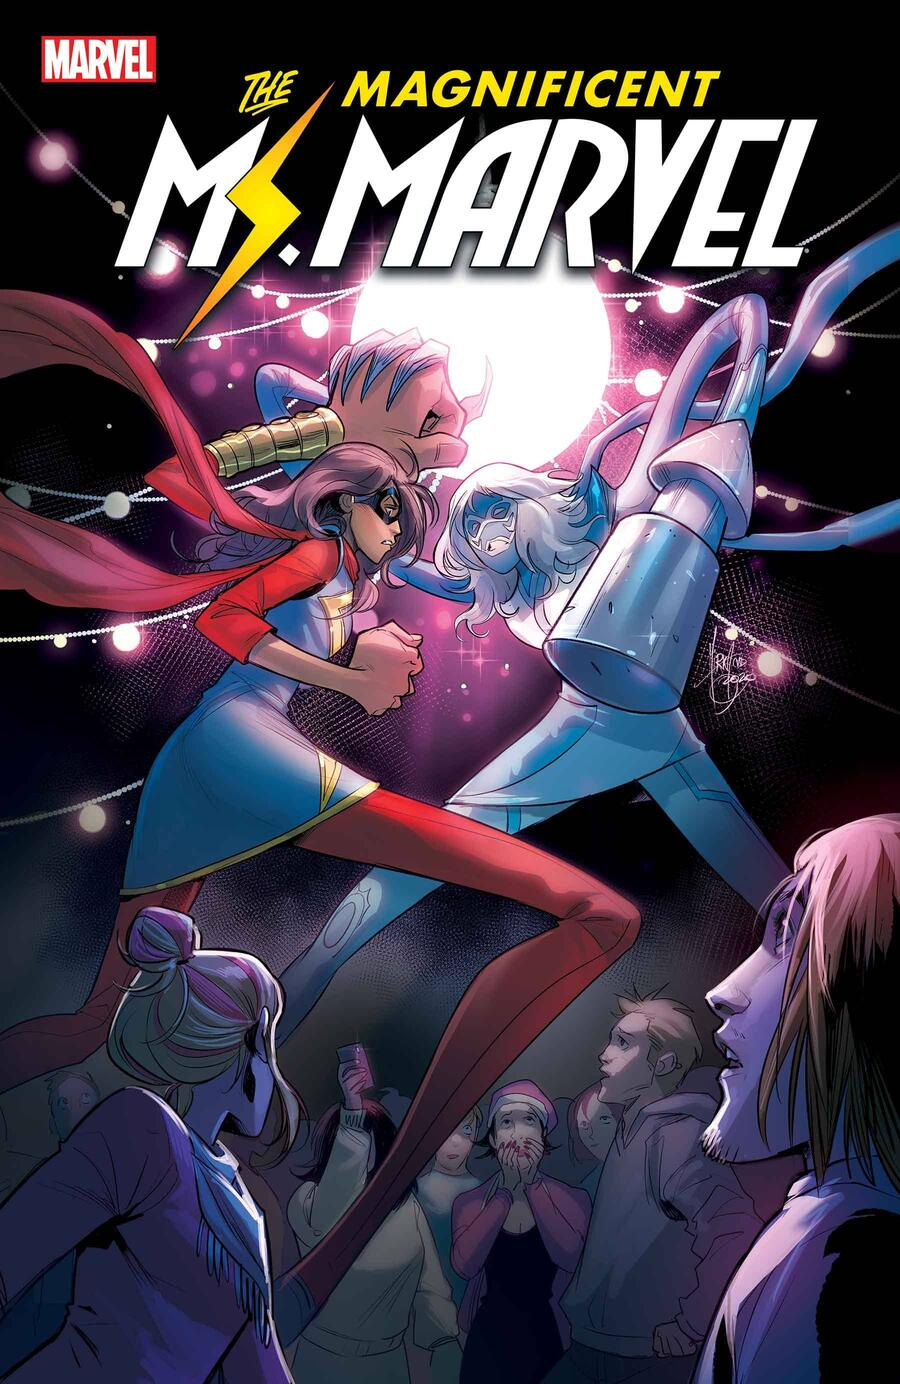 MAGNIFICENT MS. MARVEL #18 cover by Mirka Andolfo